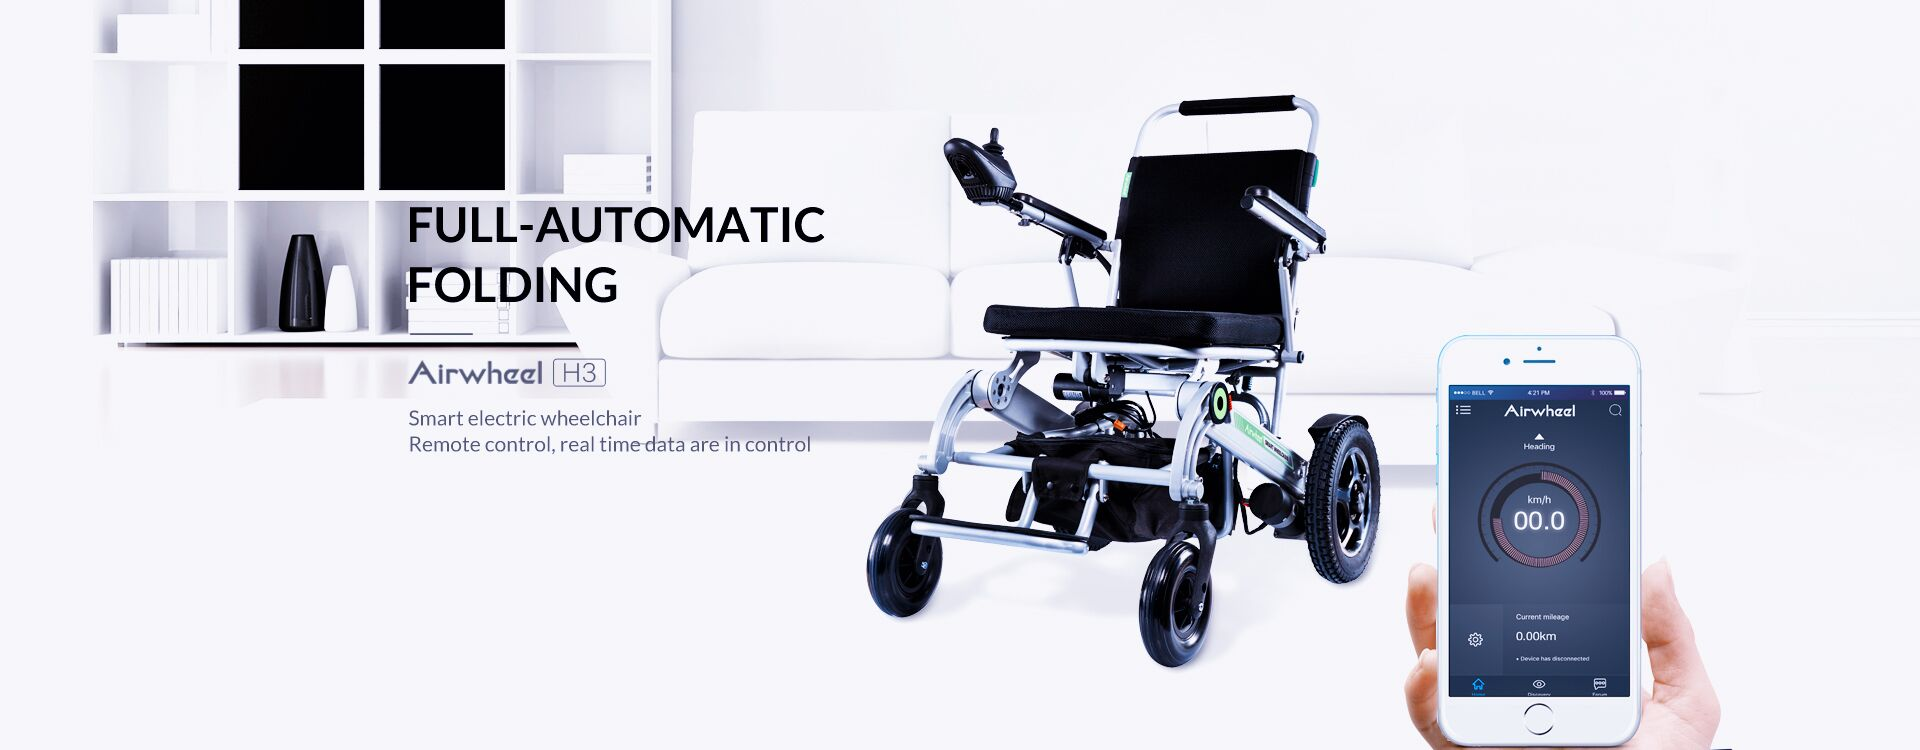 Airwheel H3 lightweight smart electric wheelchair